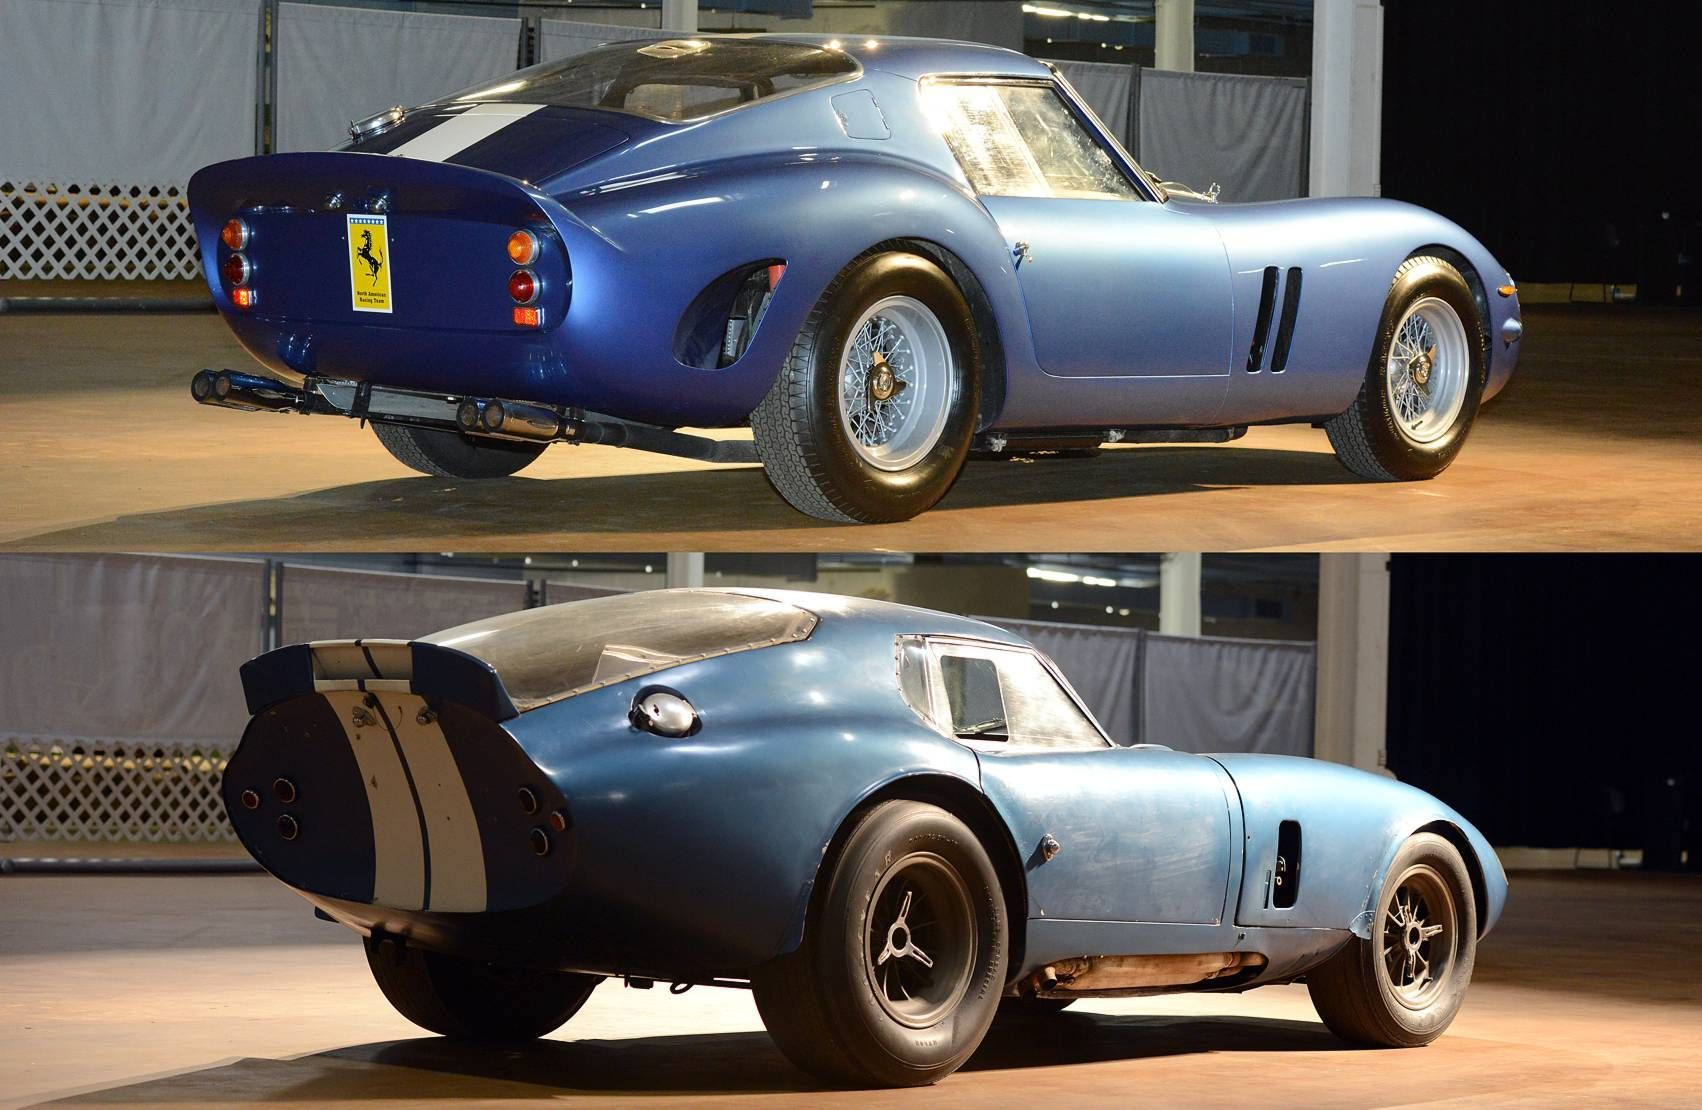 Ferrari 250 Gto And Cobra Daytona Classic Cars Daytona Coupe